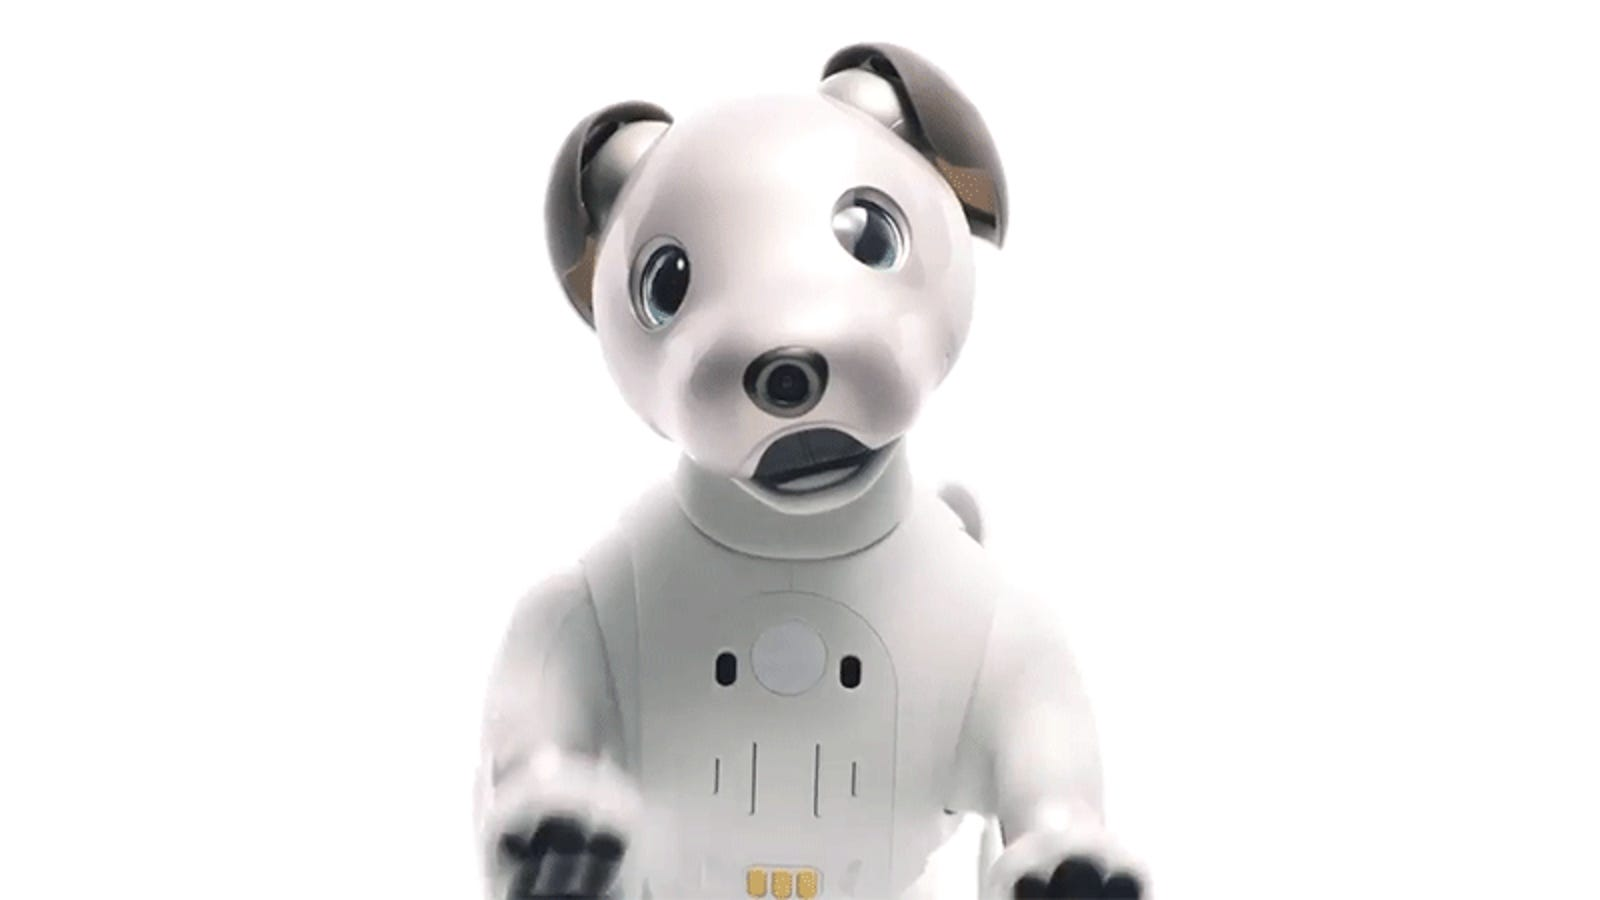 Sony's Robotic Dog Aibo Is Back From the Dead